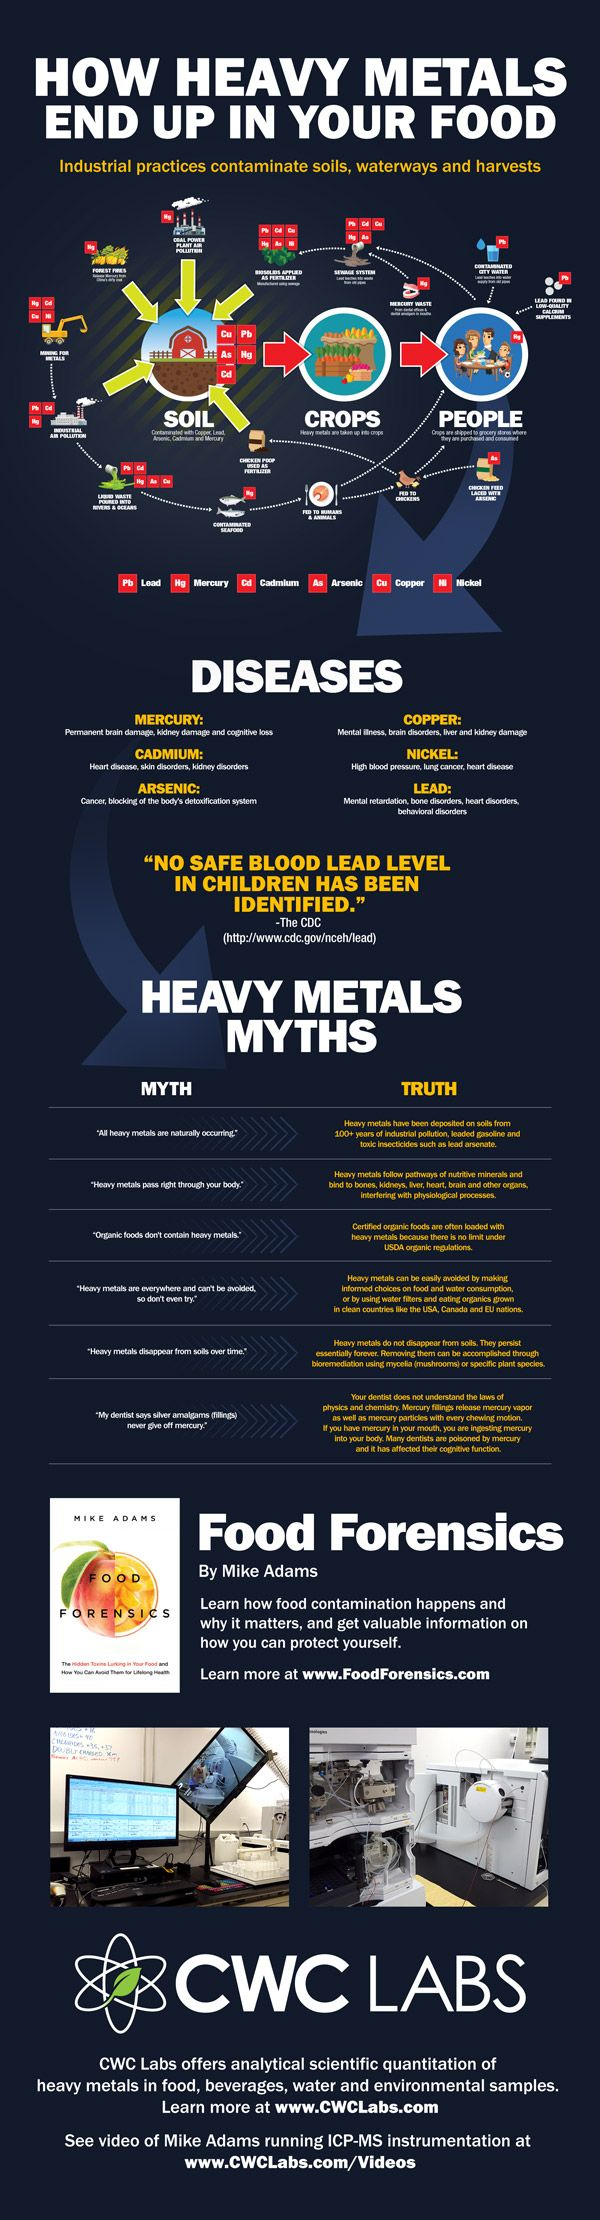 Health Ranger releases stunning infographic showing how heavy metals end up in the food supply due to industrial pollution - NaturalNews.com